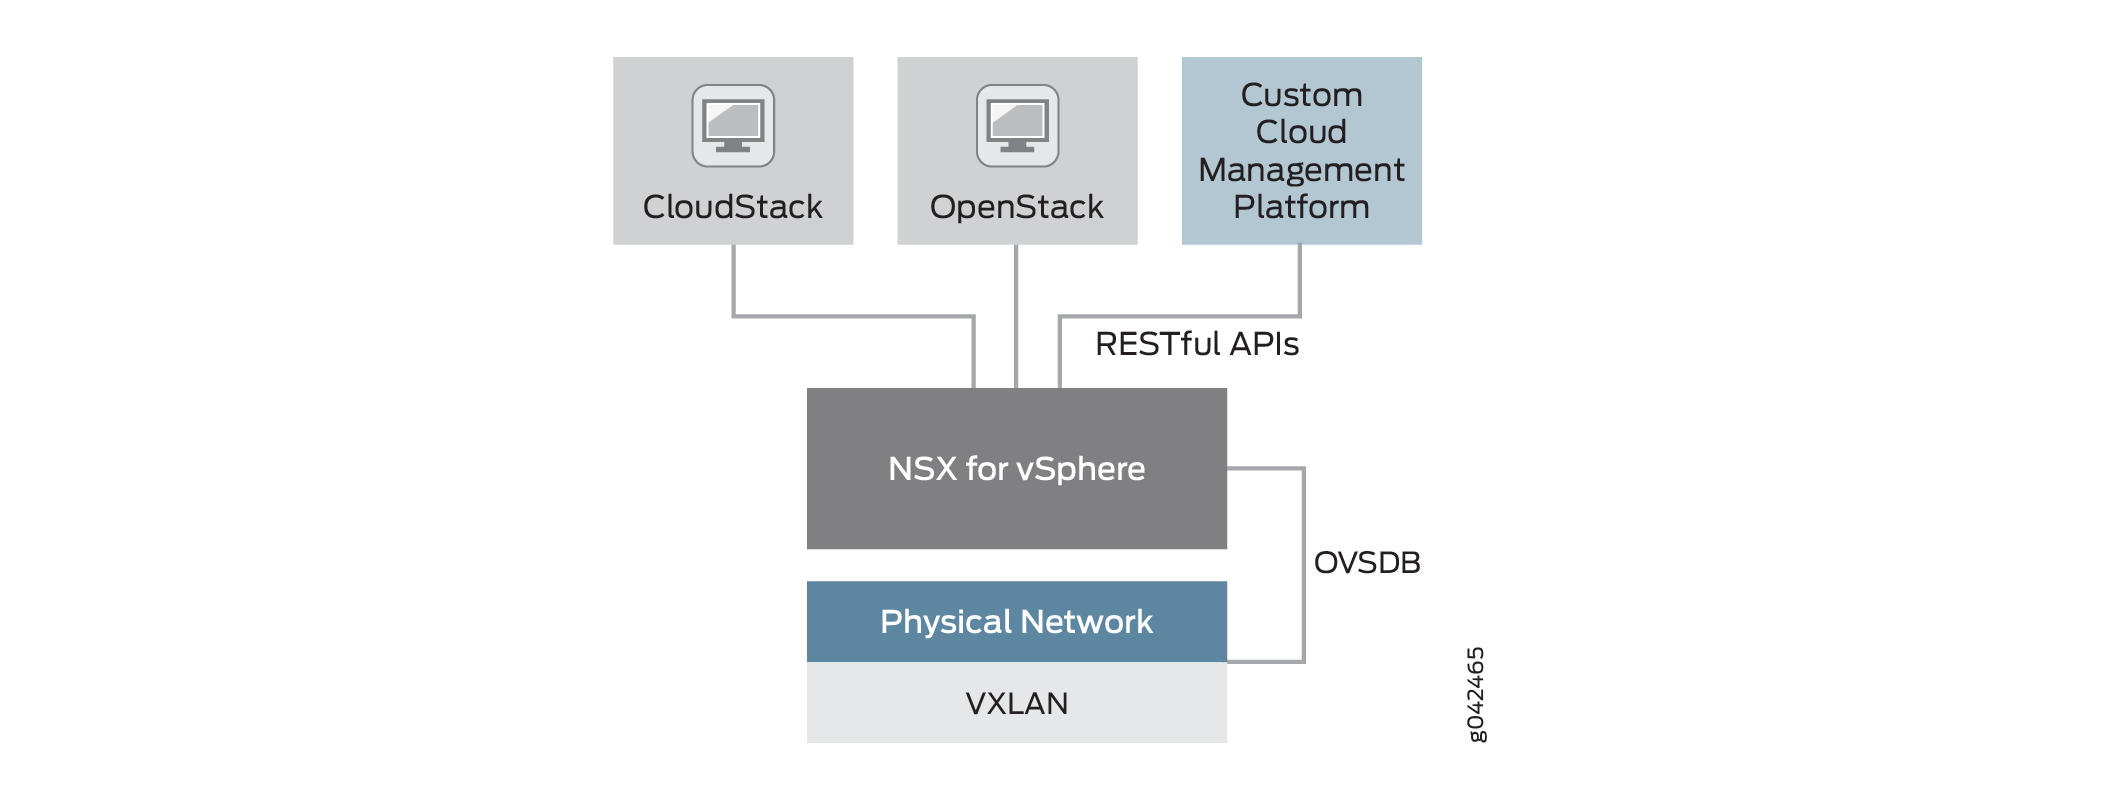 High-Level View of NSX for vSphere Architecture